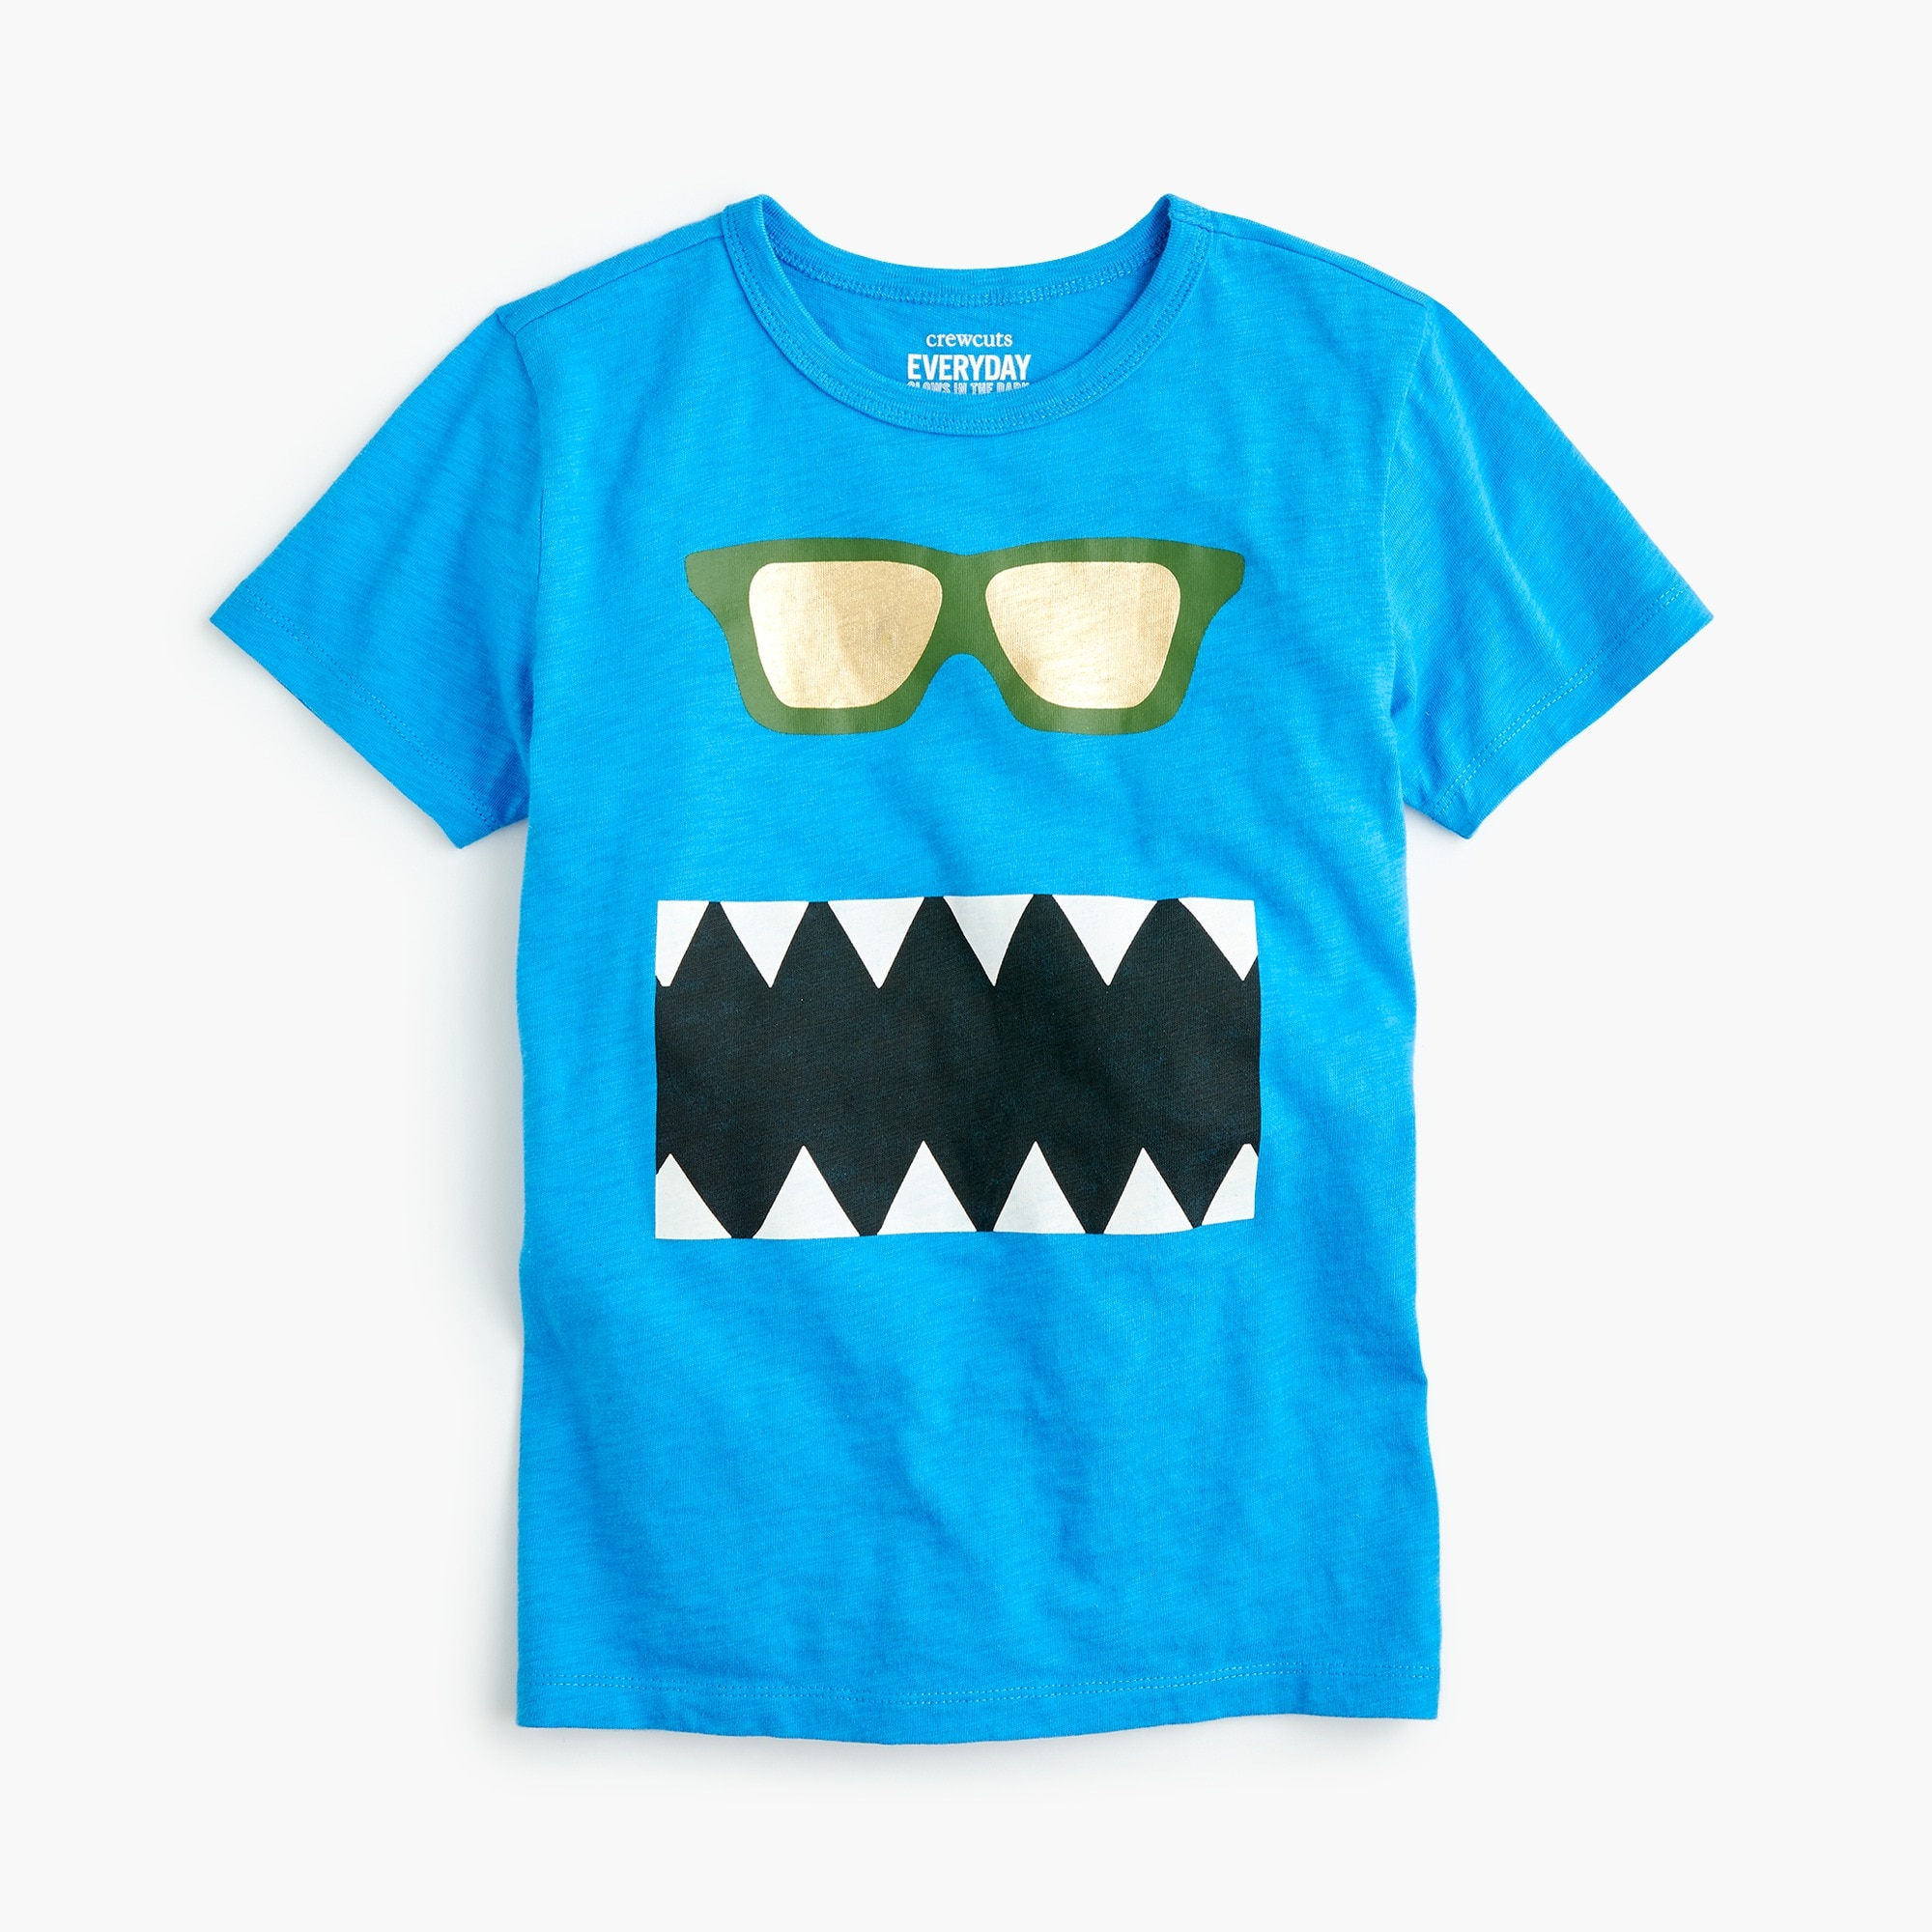 Boys' glow-in-the-dark snaggletooth monster T-shirt boy t-shirts & polos c